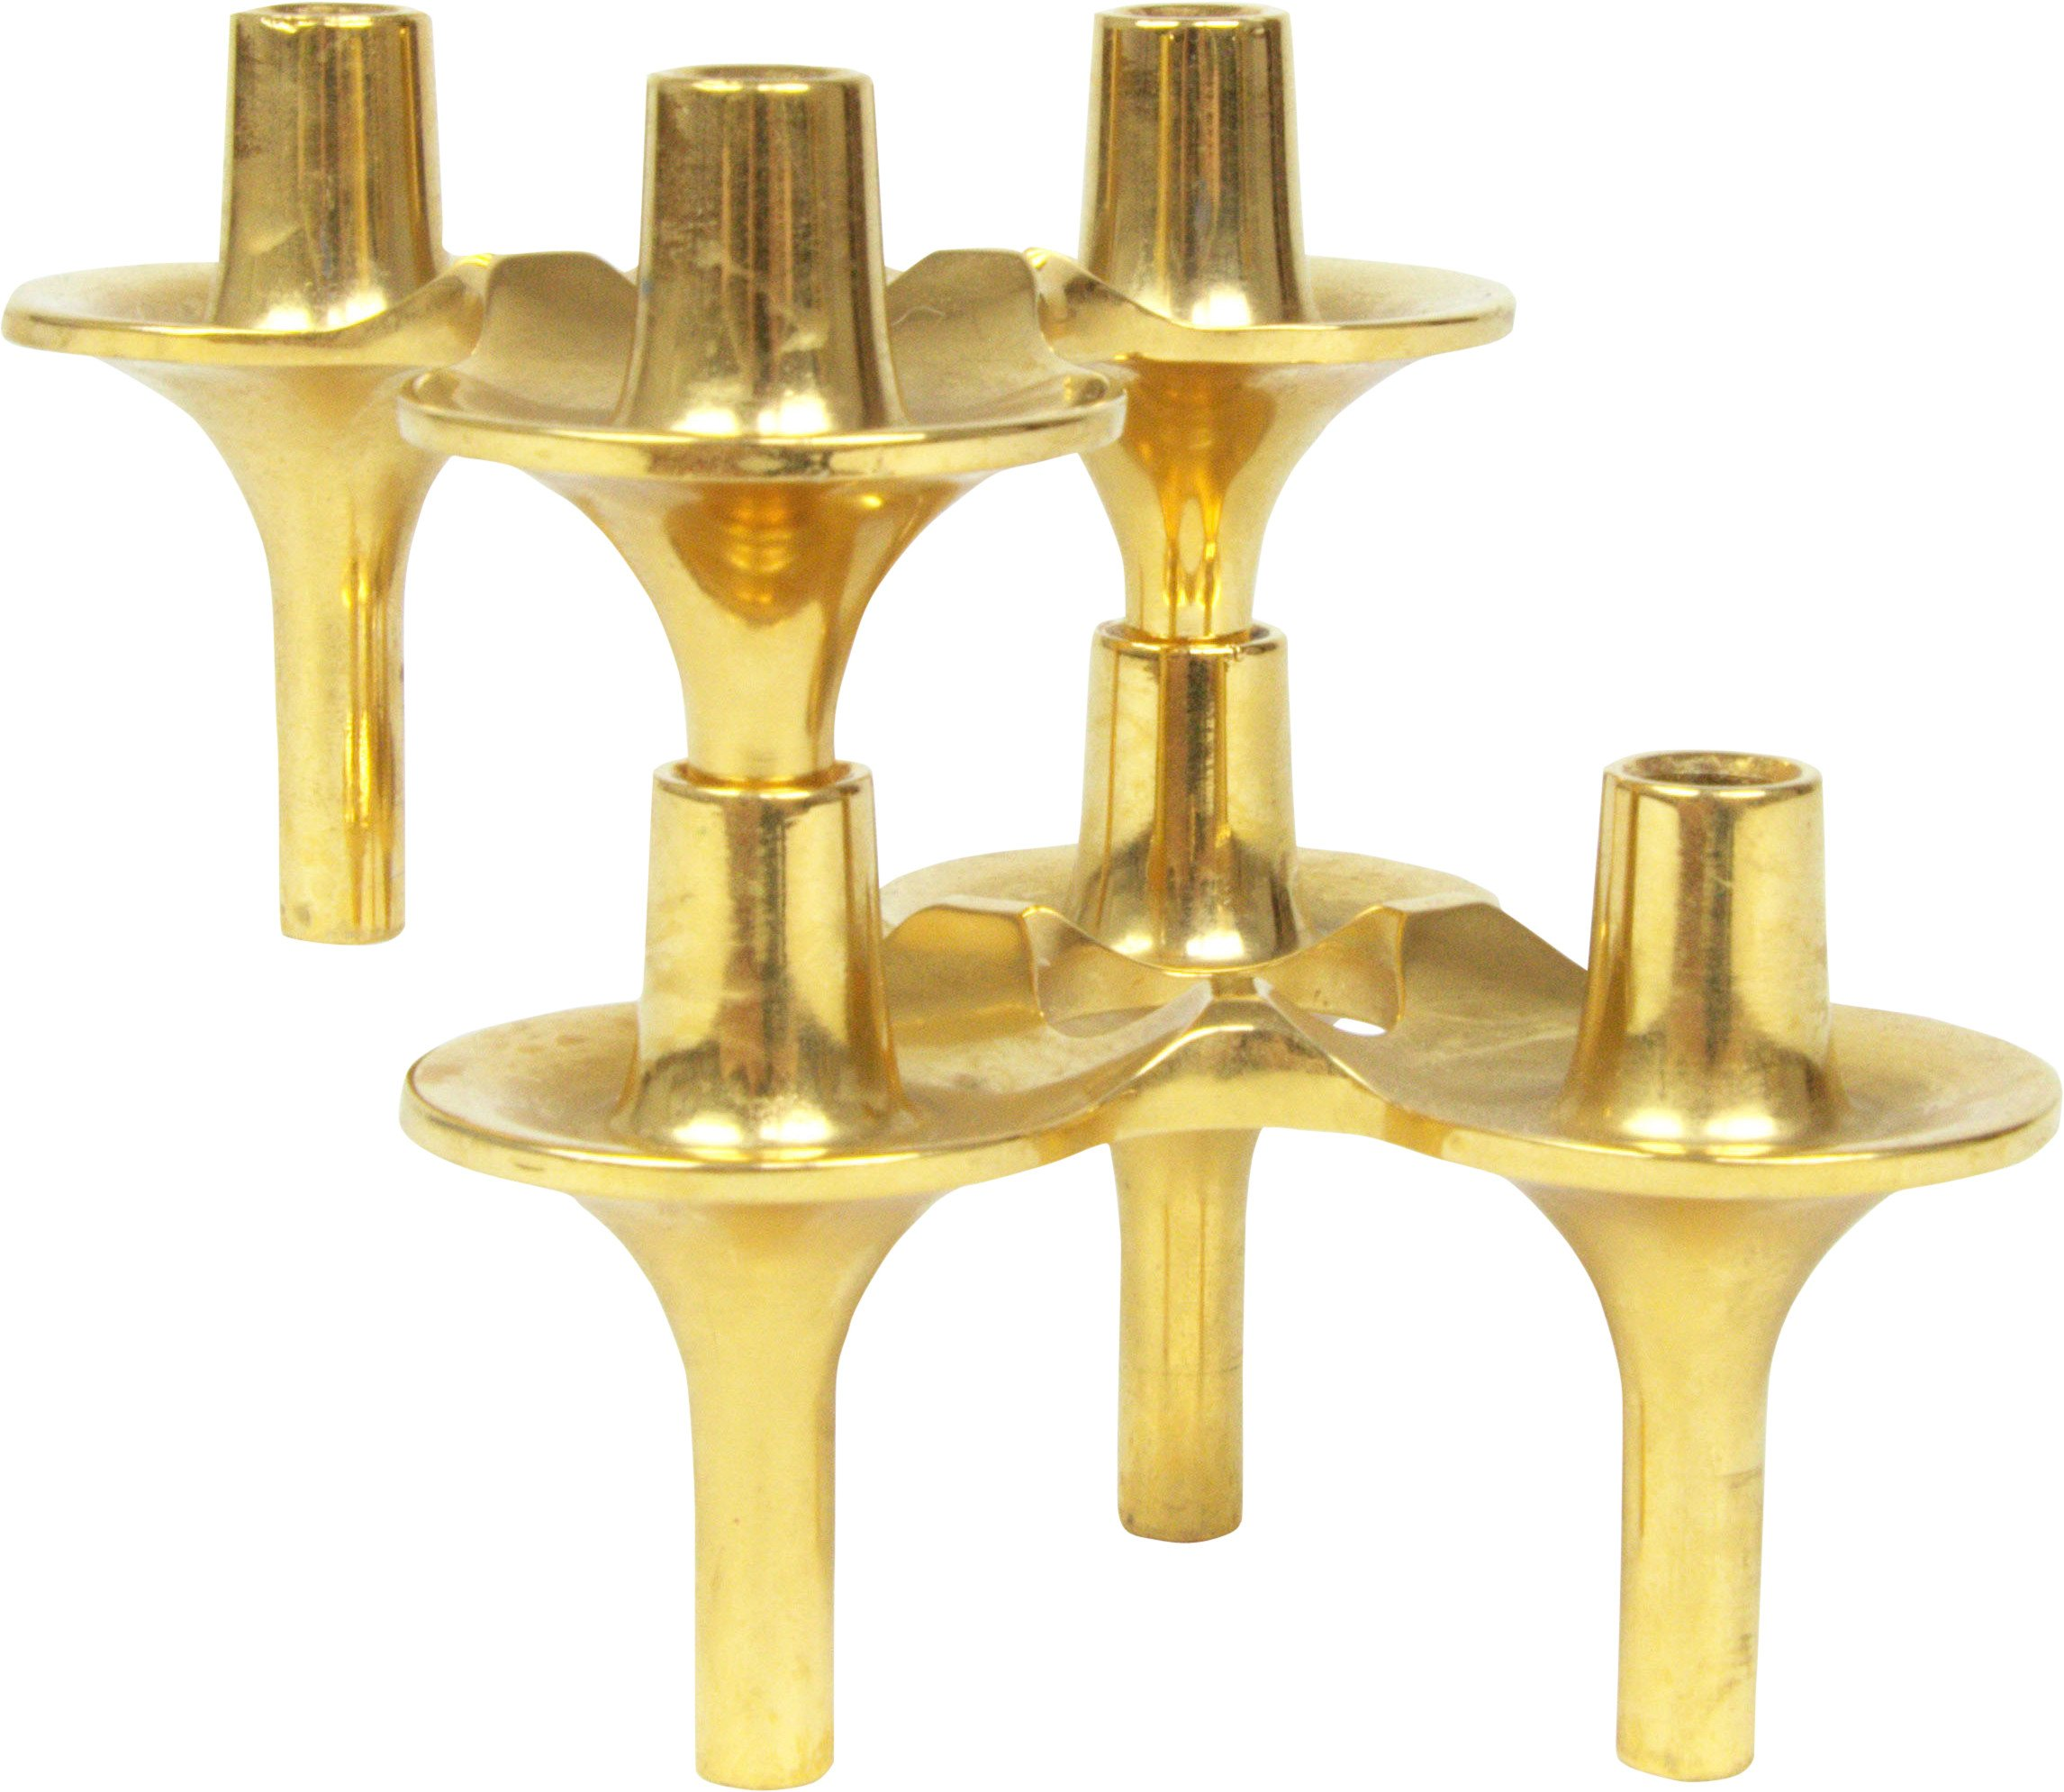 Pair of Candleholders by W. Stoff i H. Nagel, Stoff, 1970s